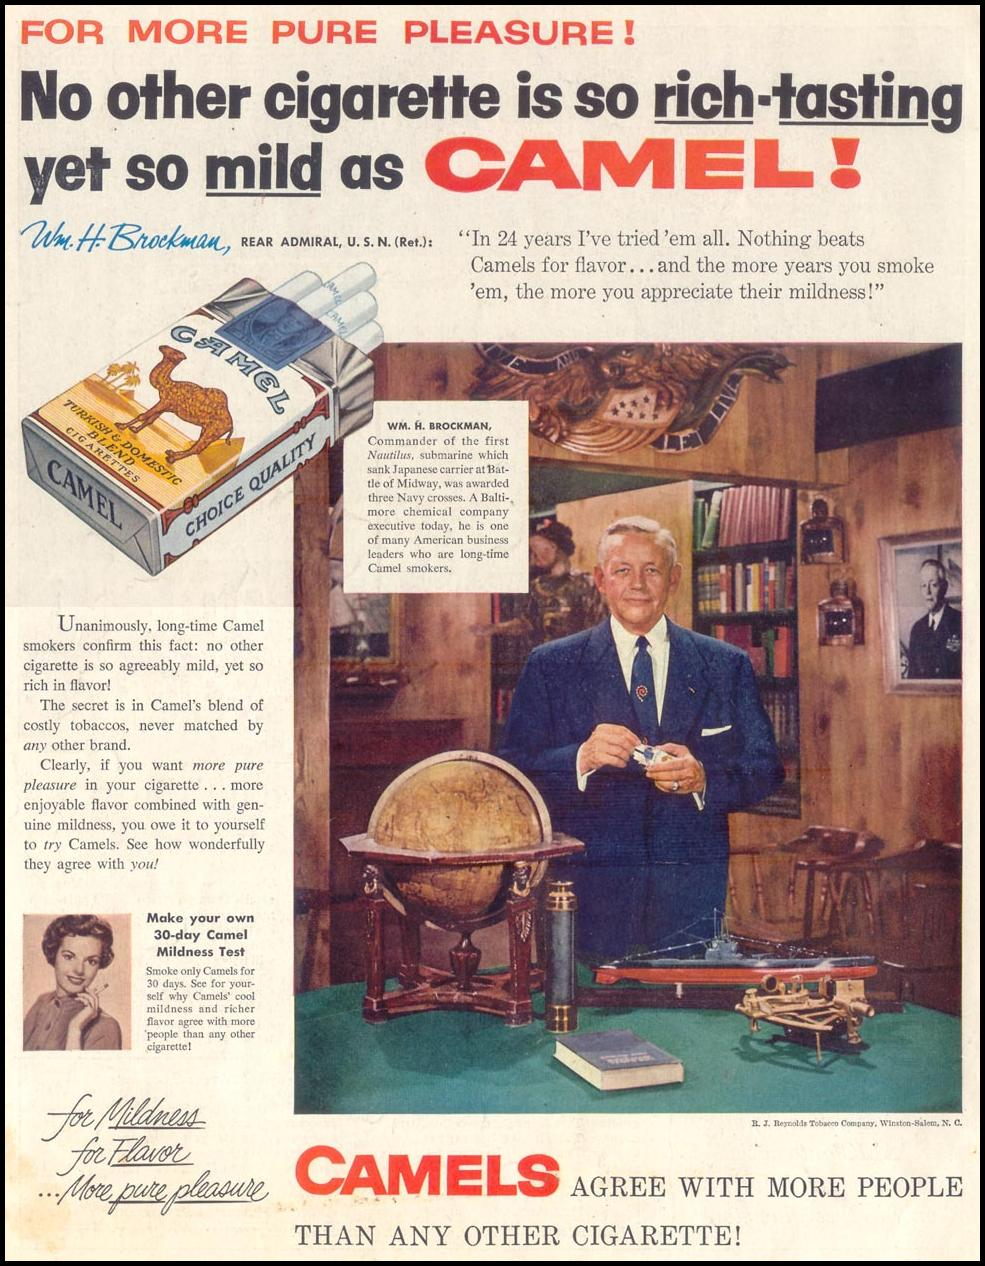 CAMEL CIGARETTES SATURDAY EVENING POST 02/05/1955 BACK COVER